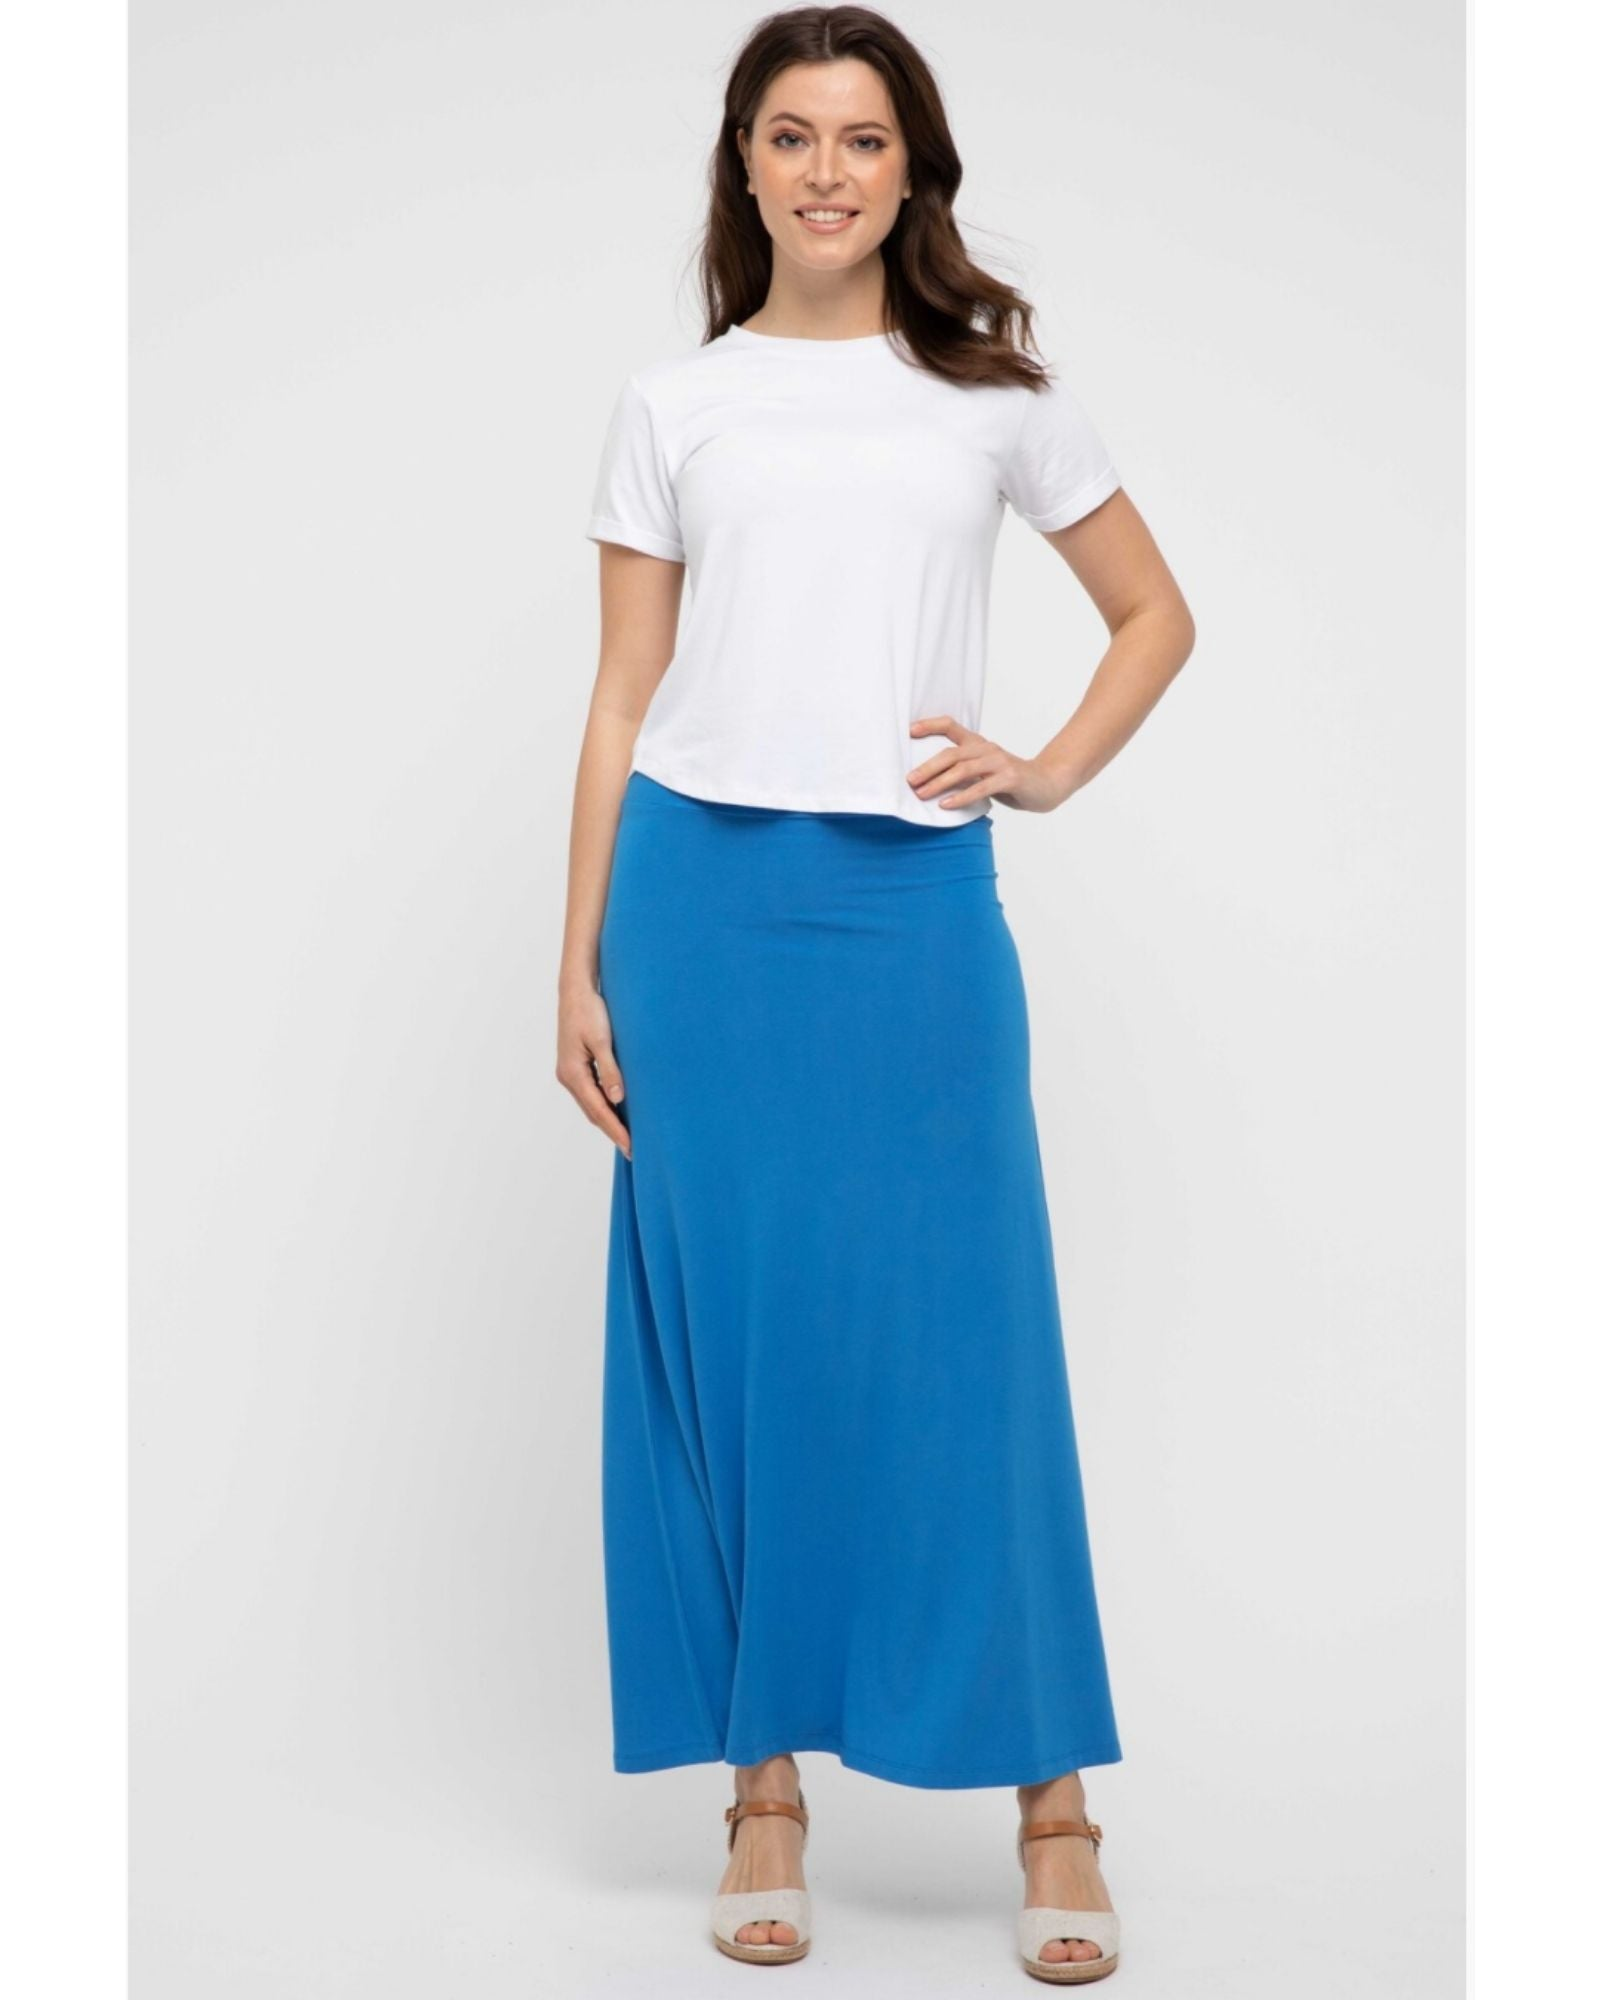 Bamboo Lana Skirt - French Blue -Size 10-22